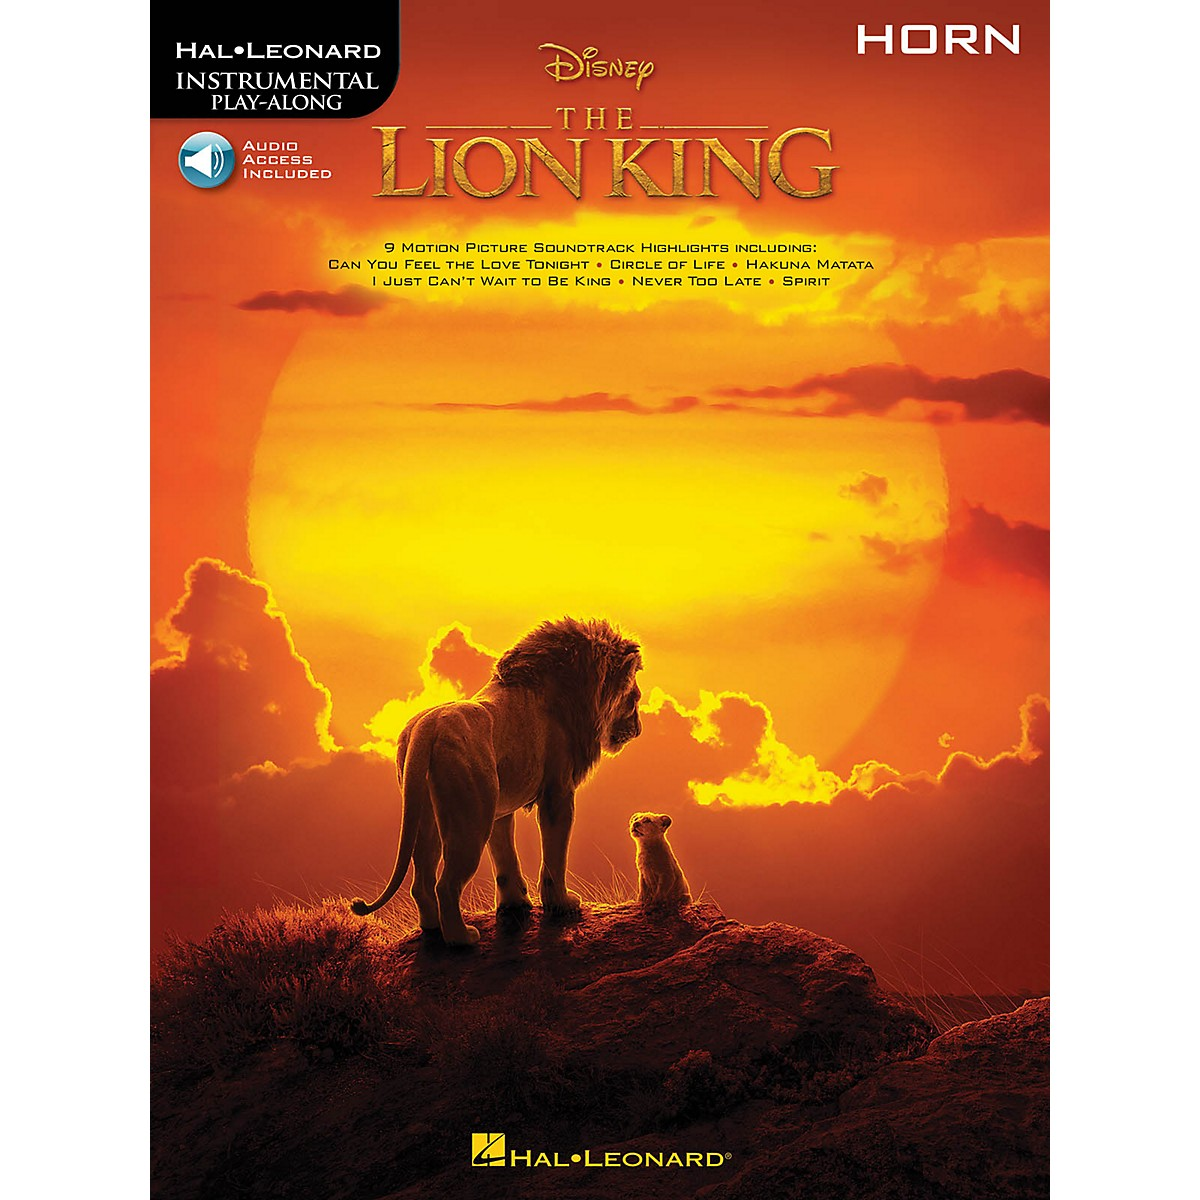 Hal Leonard The Lion King for Horn Instrumental Play-Along Book/Audio Online